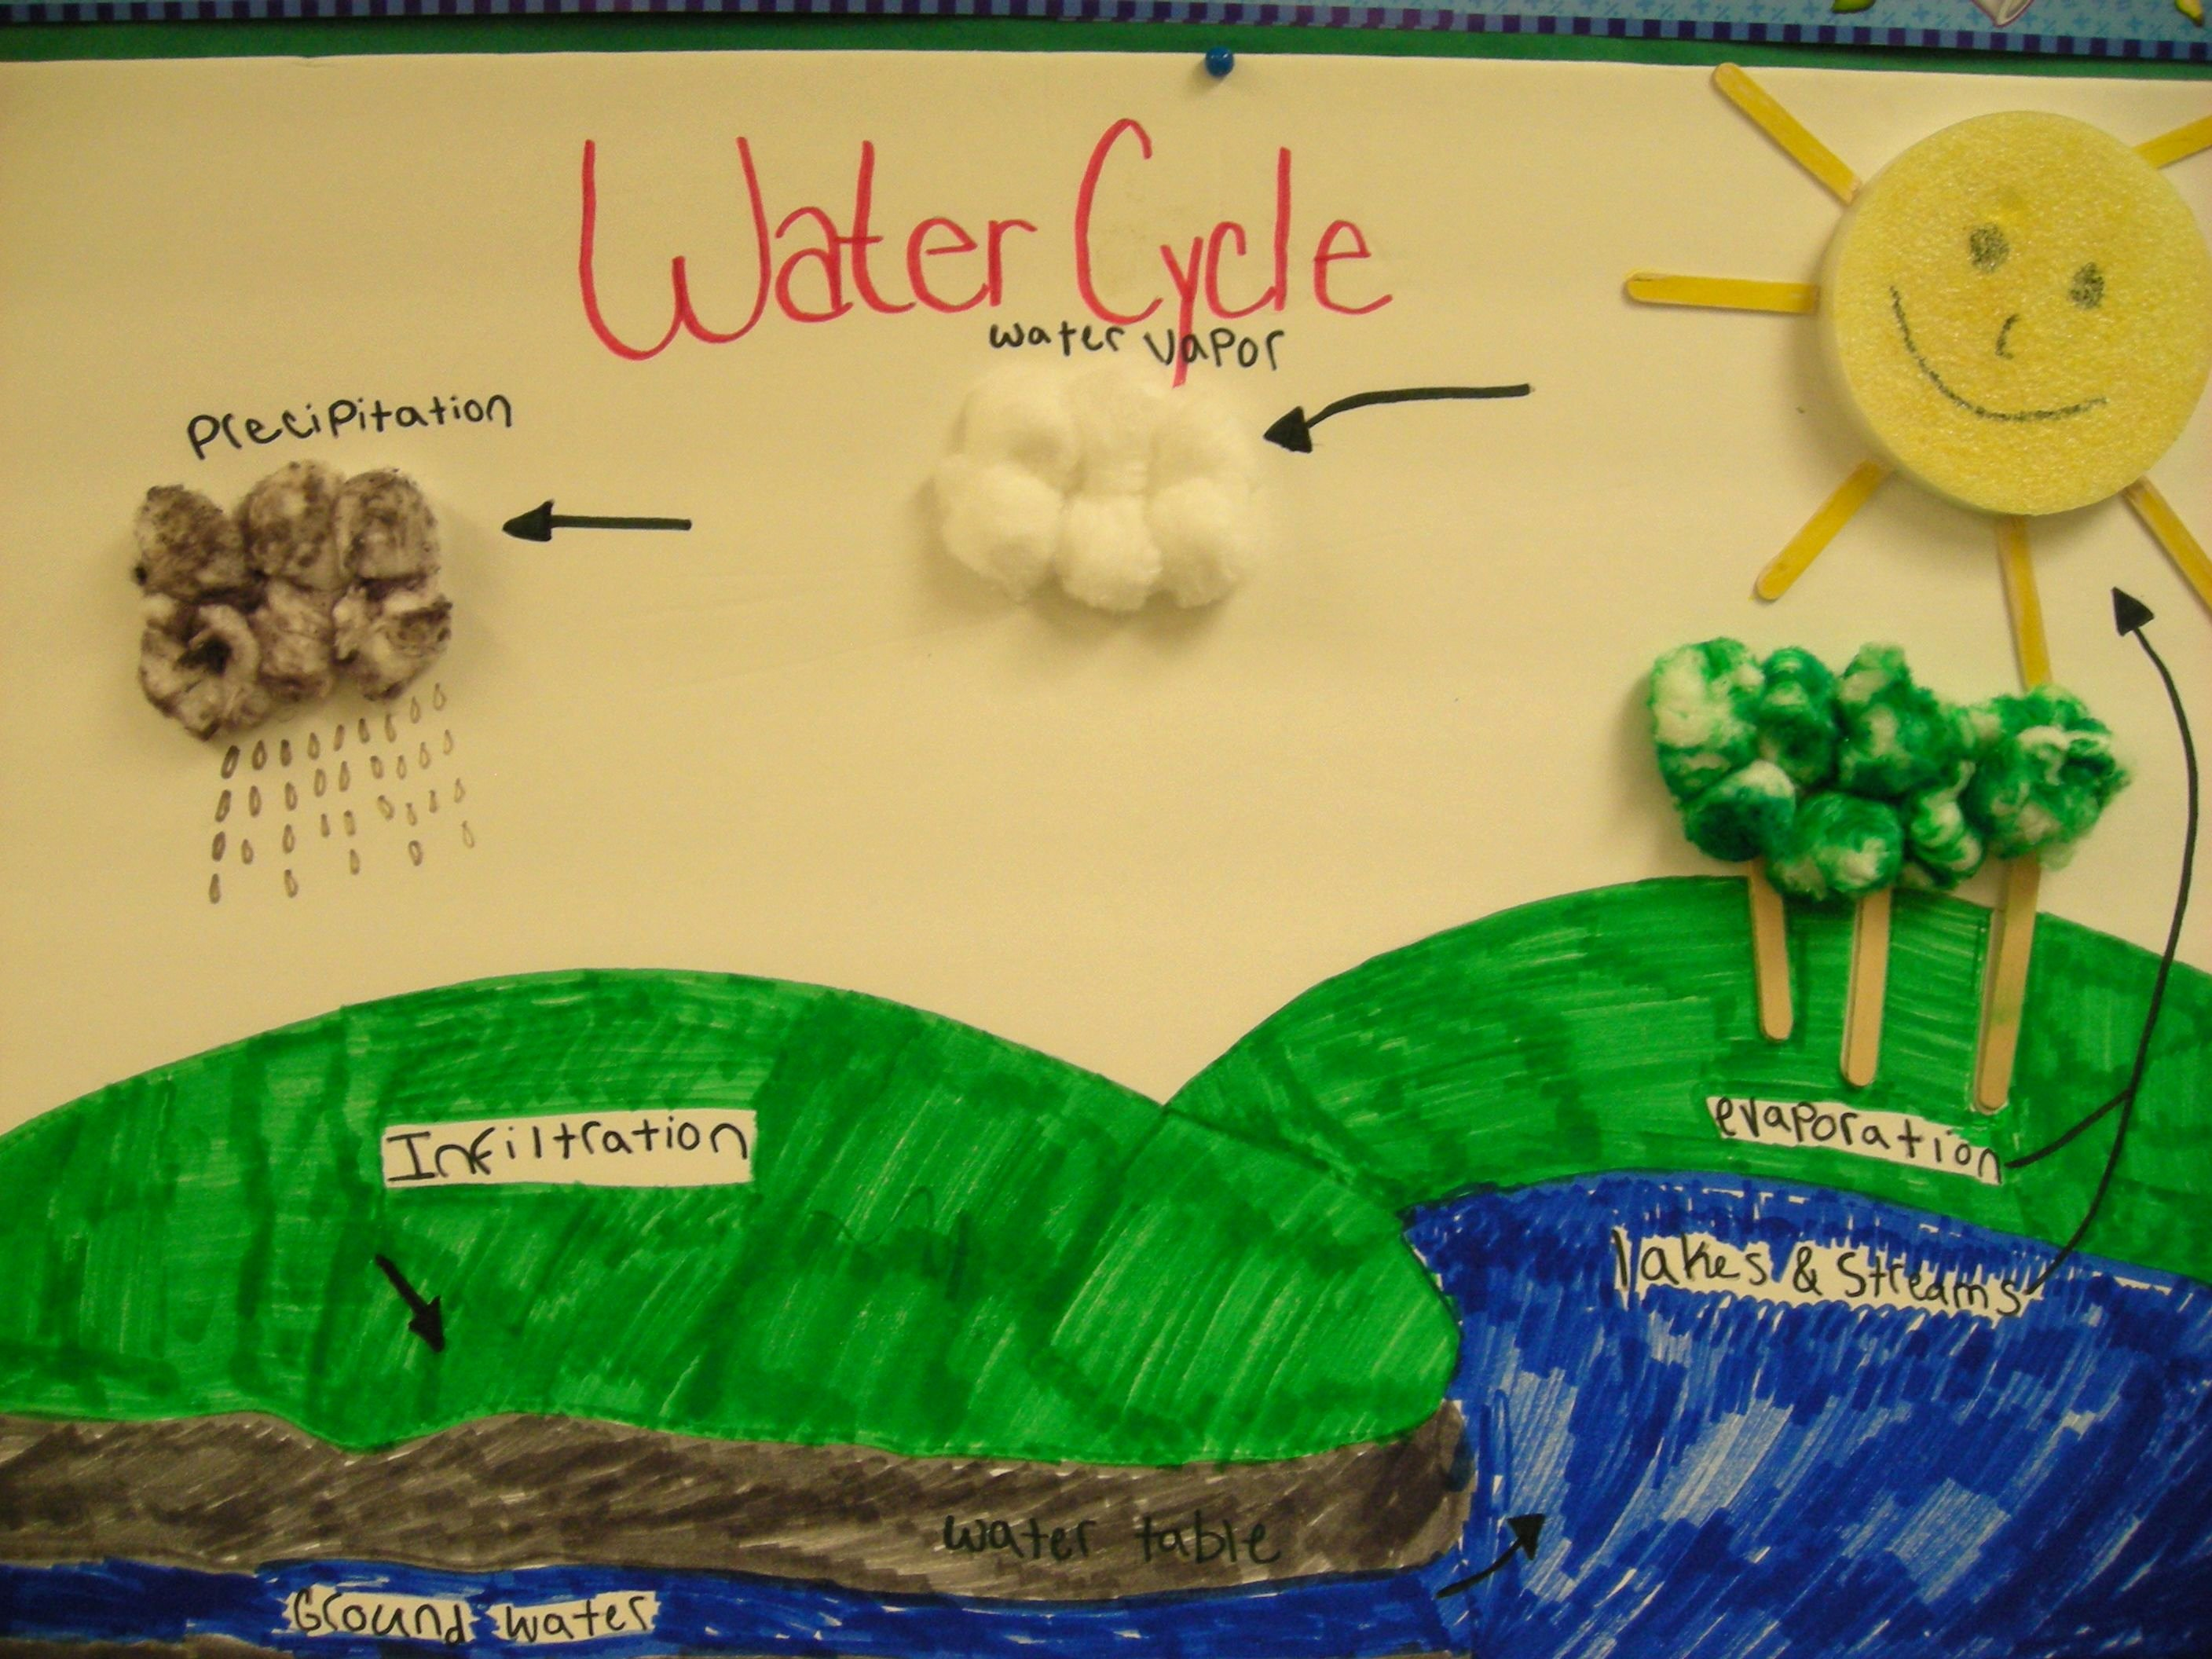 Water Cycle Worksheet Middle School Unique Water Cycle Diagram Worksheet for Middle School